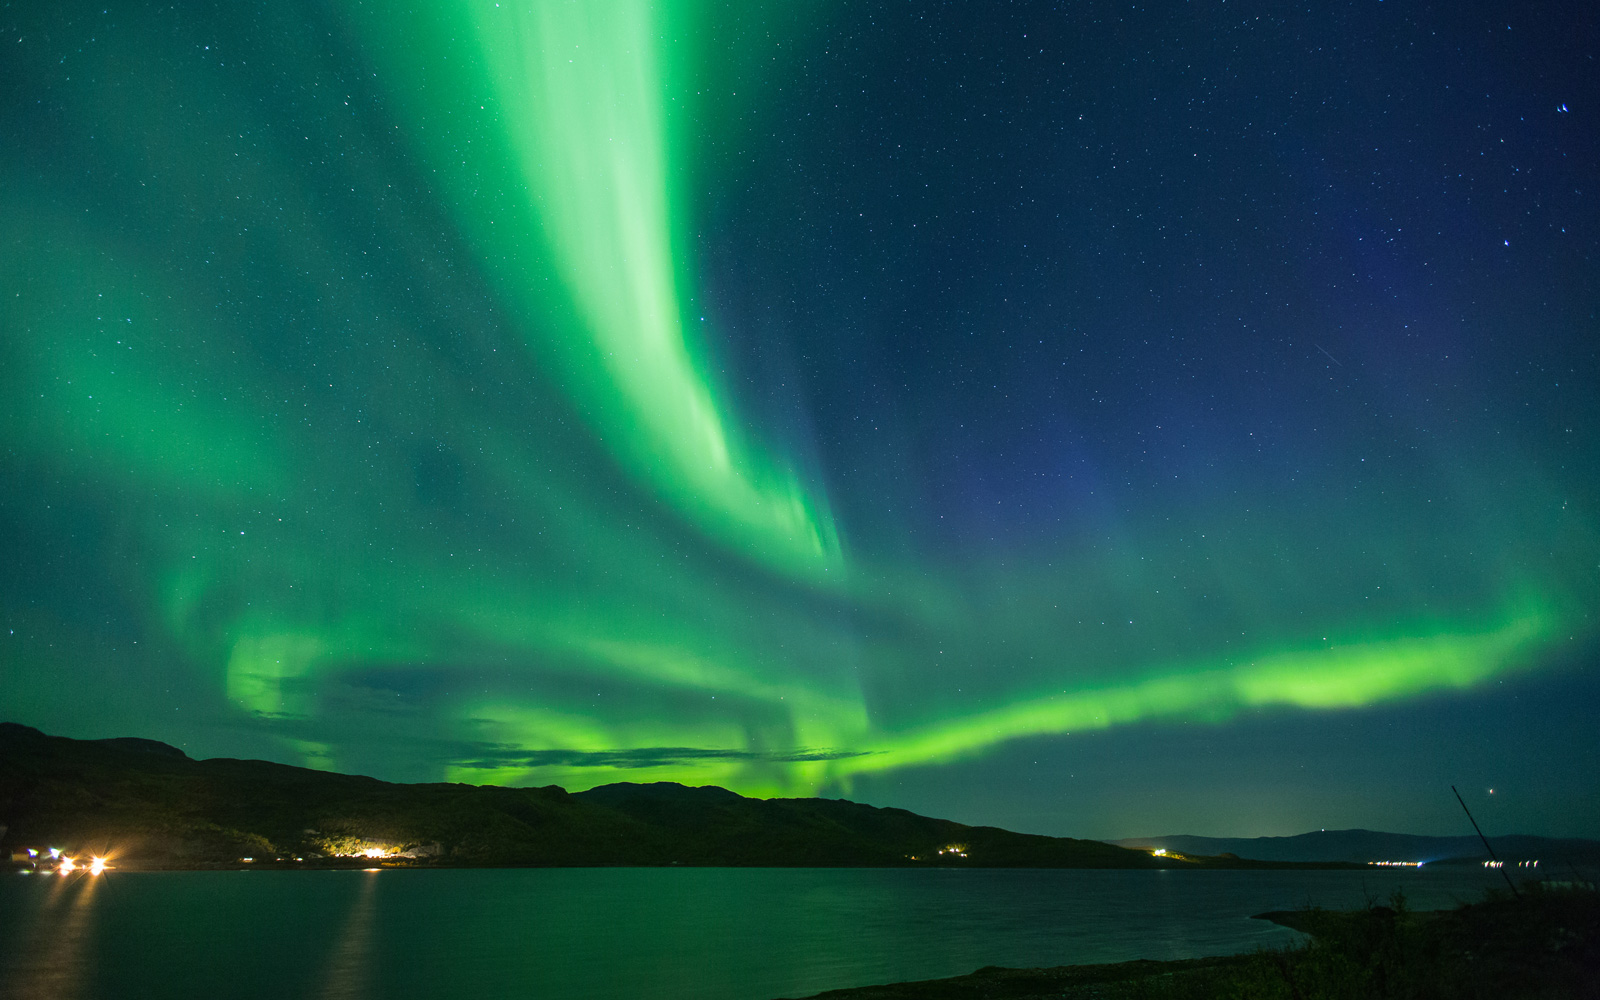 SAS Is Having a Sale With Cheap Flights to Scandinavia to See the Northern Lights